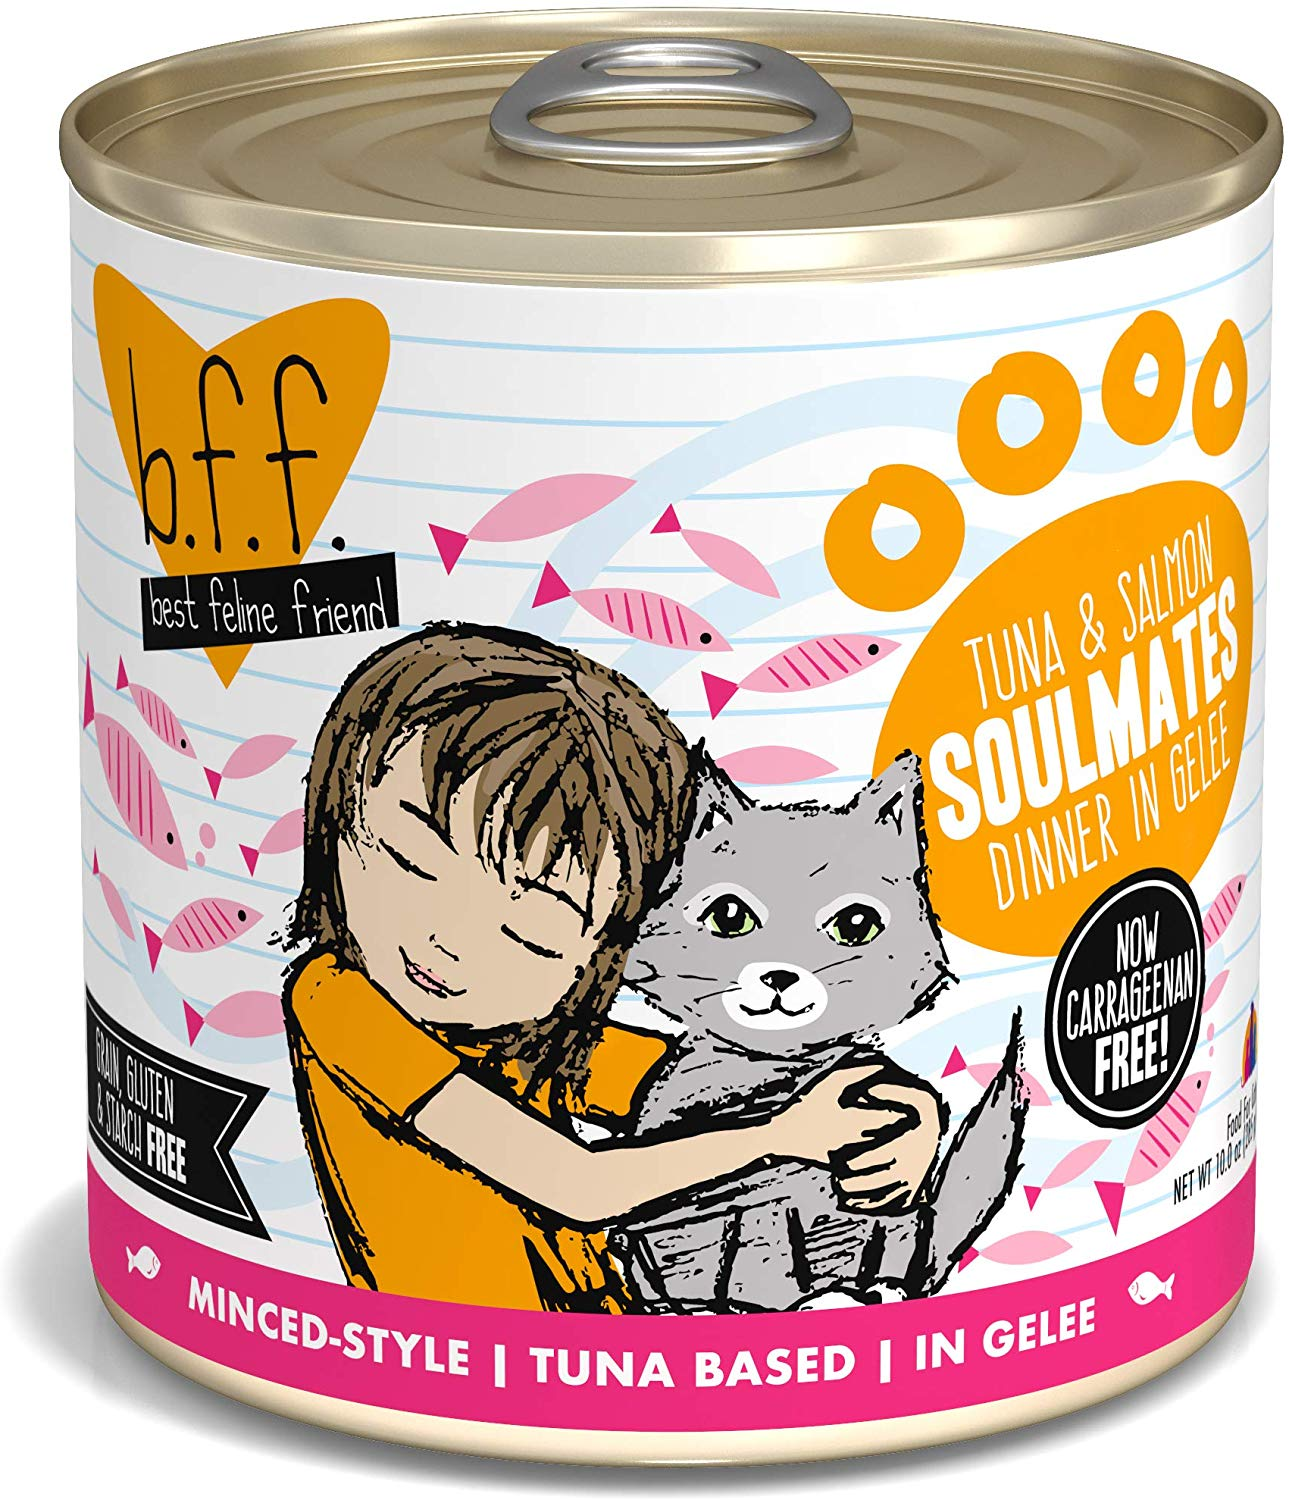 BFF Originals Soulmates Tuna & Salmon Dinner in Gelee Grain-Free Wet Cat Food, 10-oz